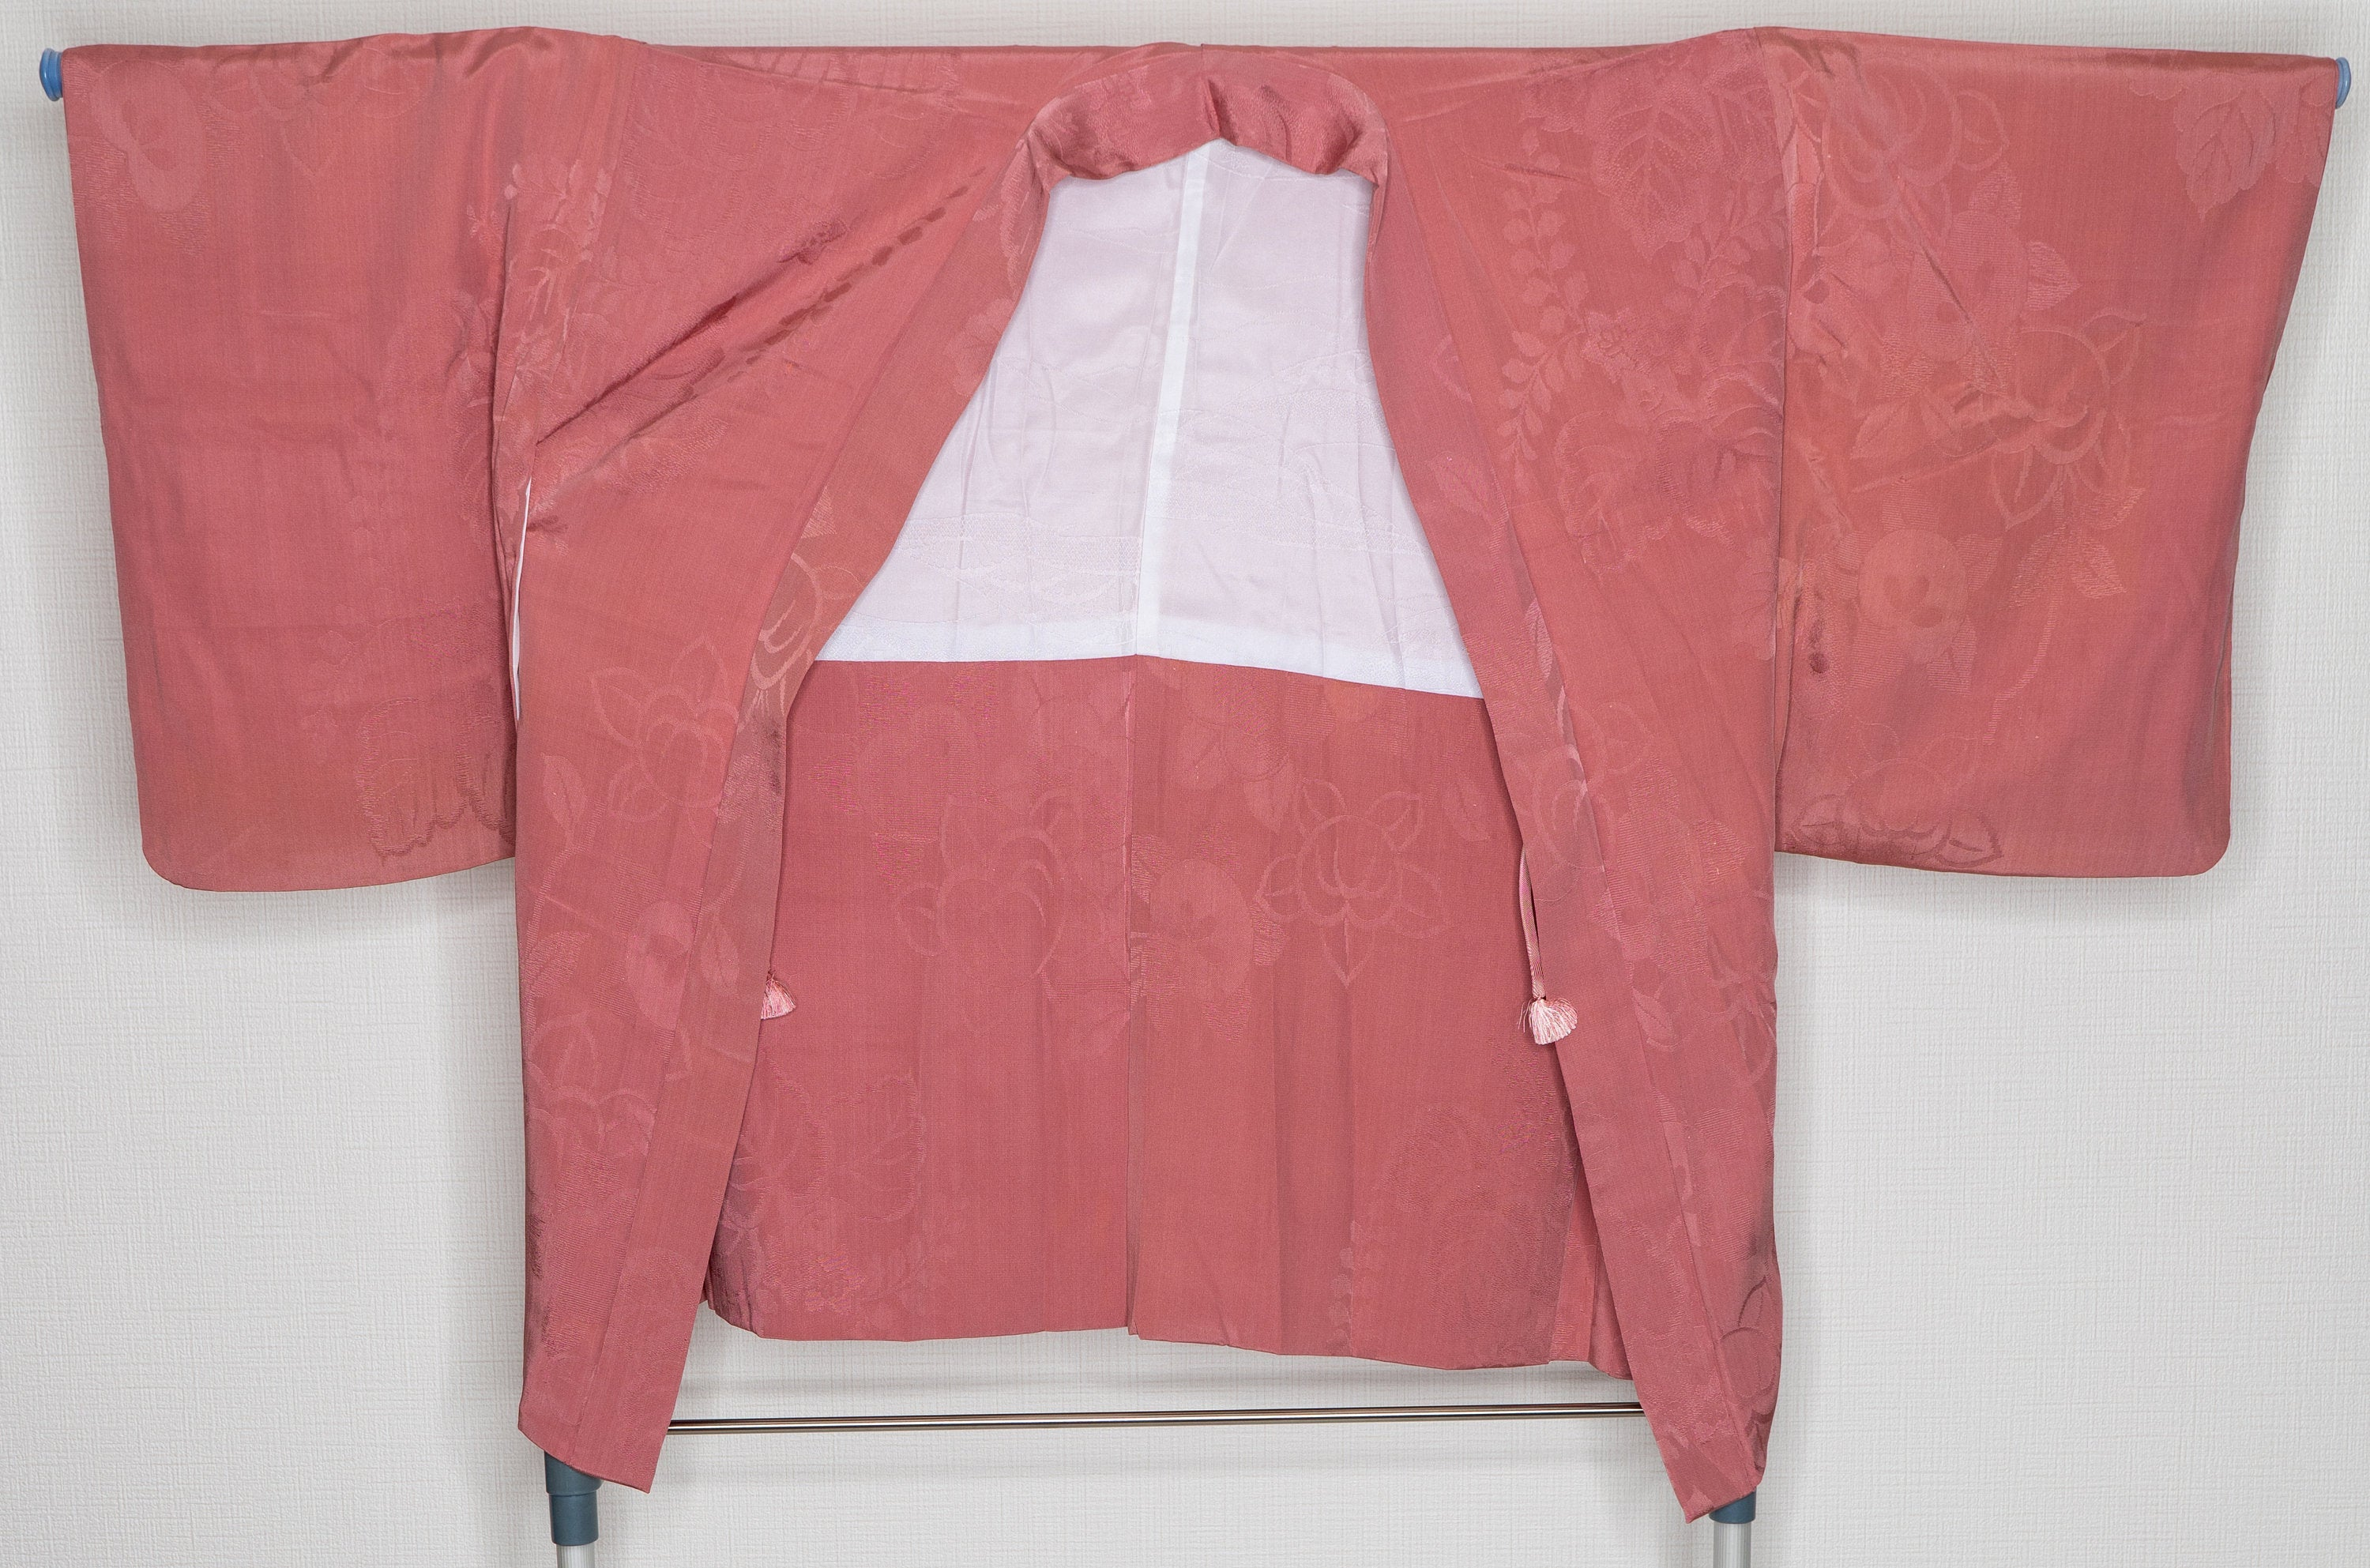 Pink Silk Haori with Subtle Floral Patterns - Vintage Simple Style Soft Women's Kimono Jacket